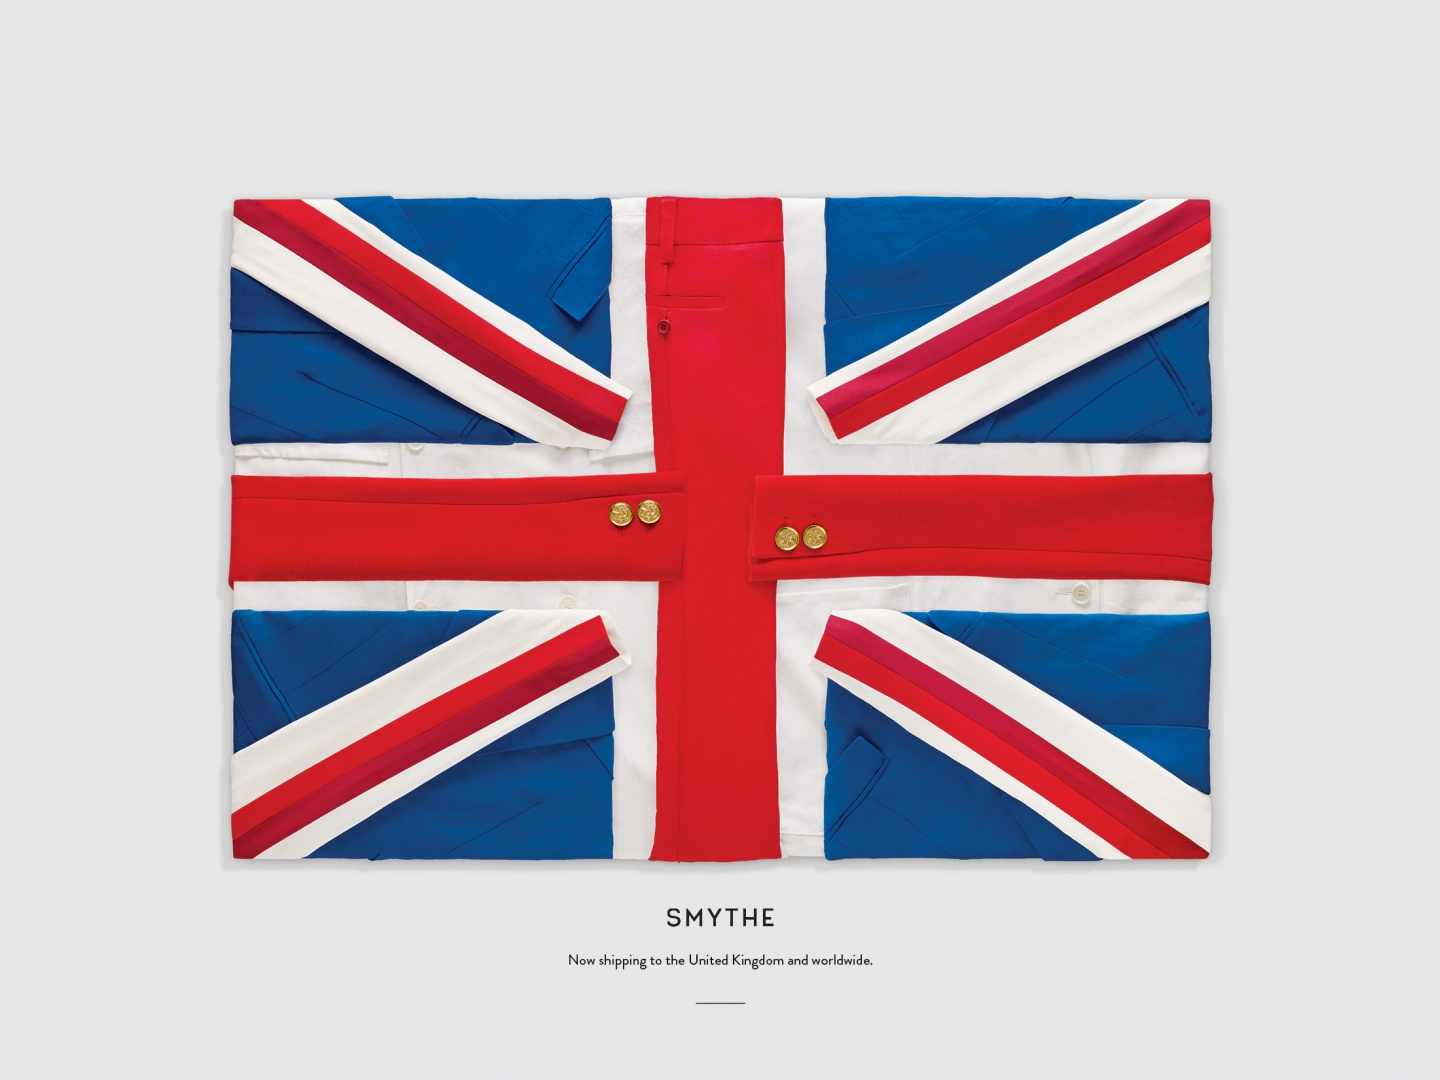 Now Shipping Worldwide: UK Thumbnail